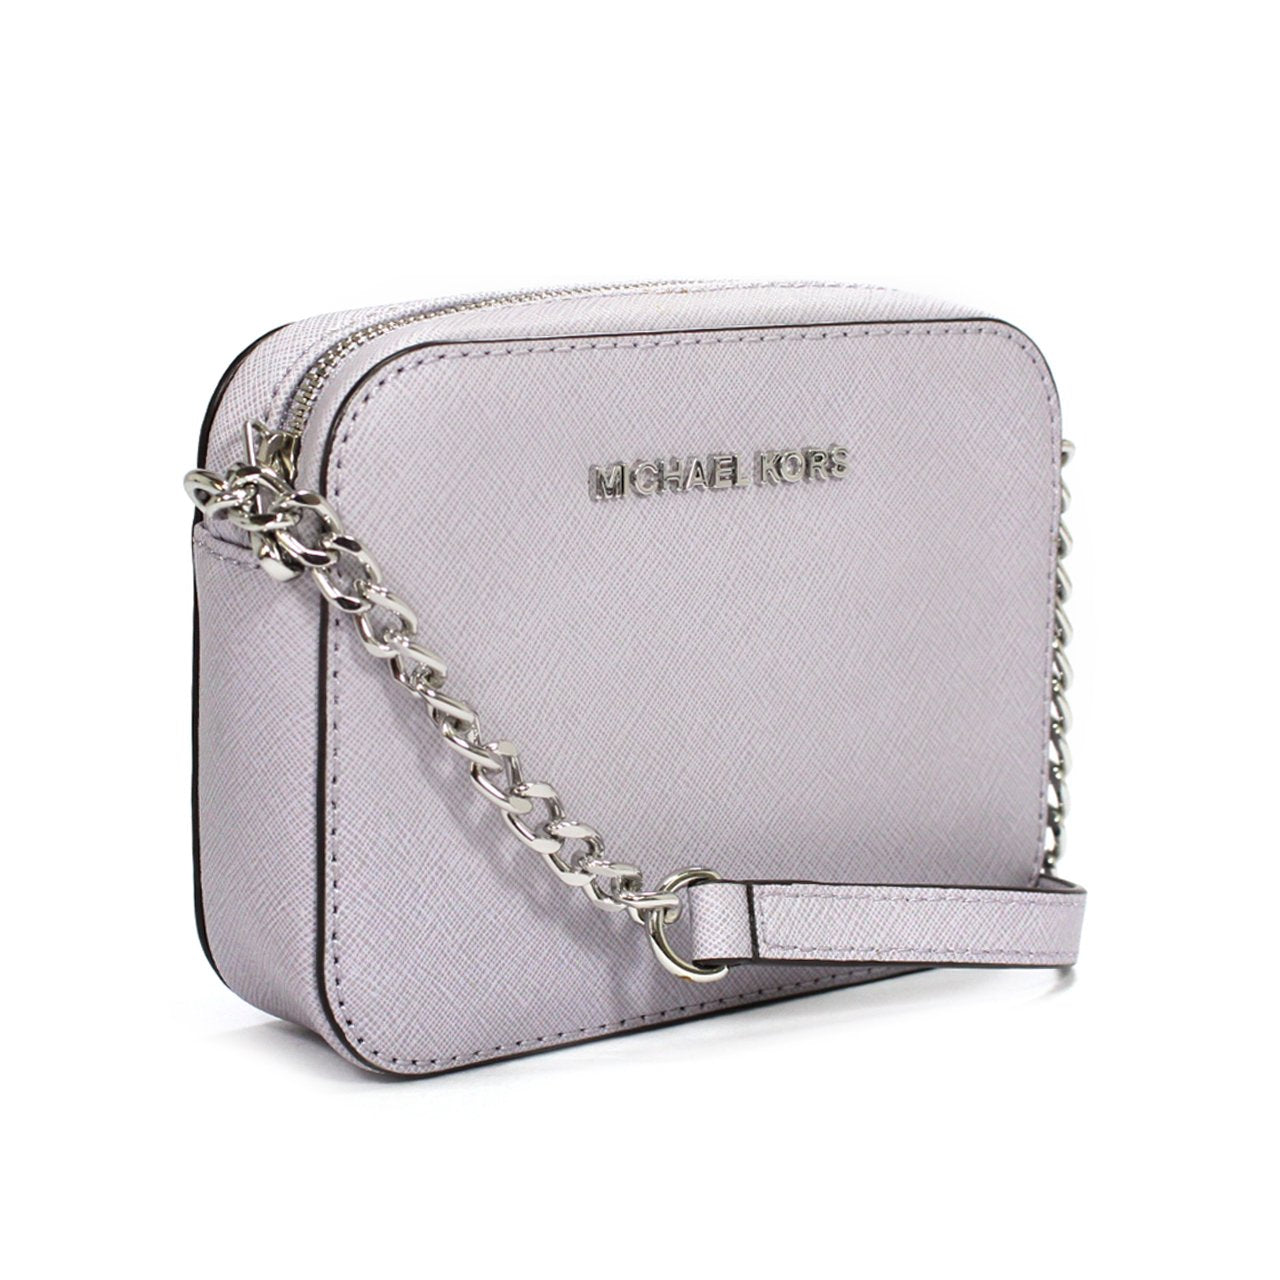 ca530de8f2d6 Michael Kors Mini Jet Set Crossbody Bag-Online India at Galleria Di ...